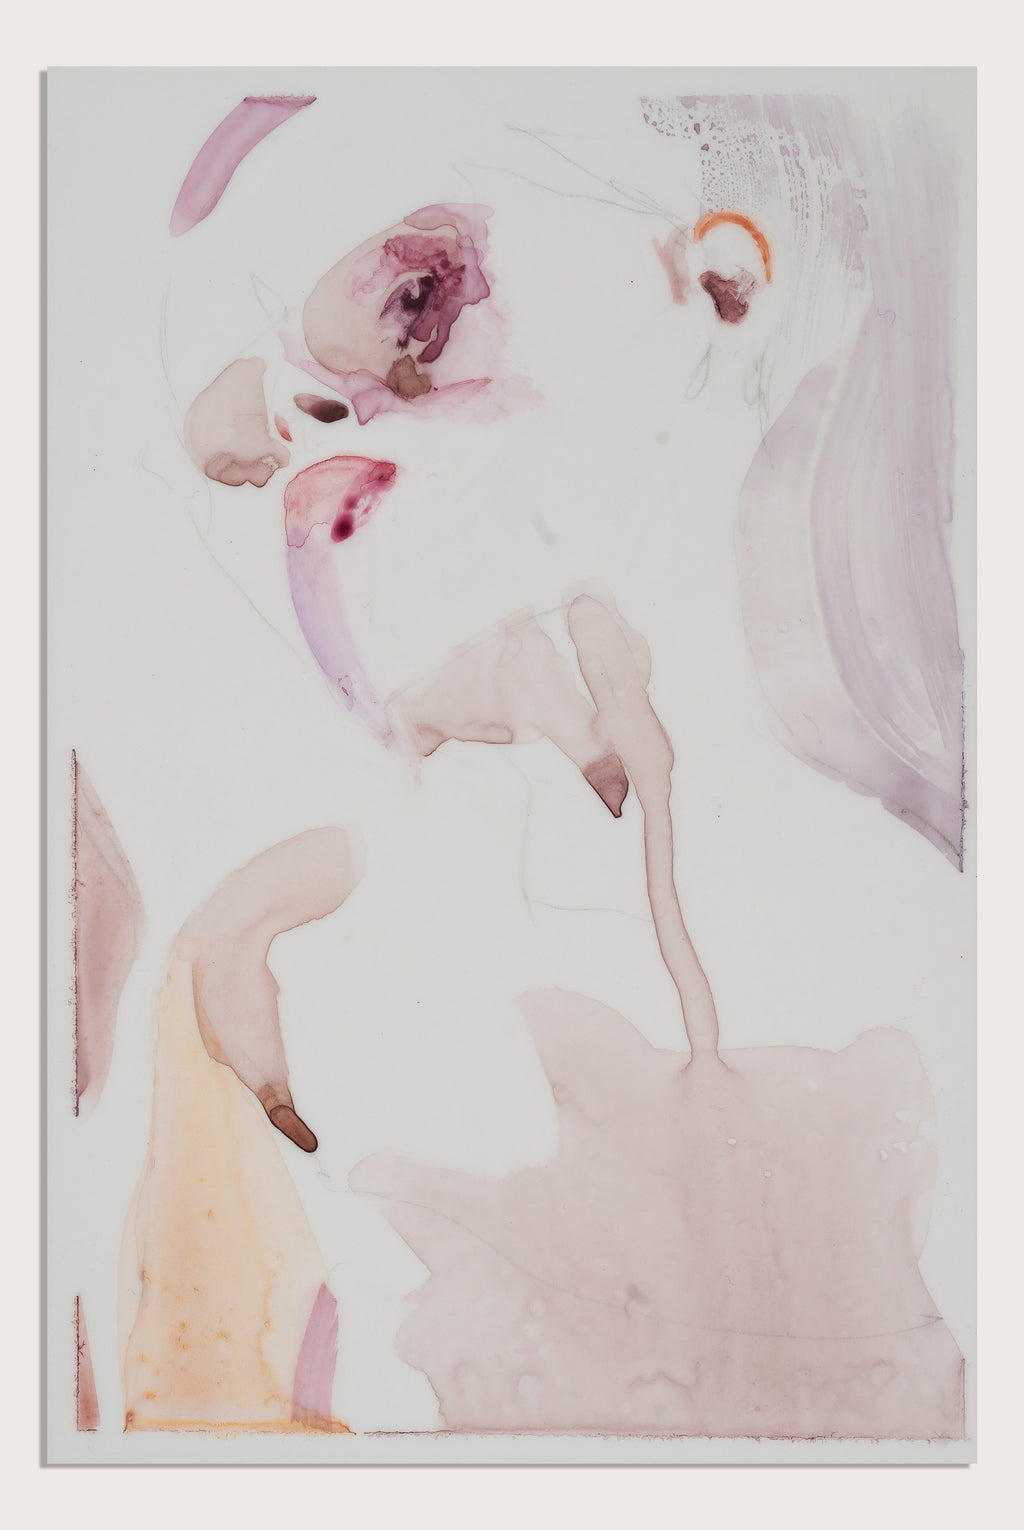 'Surface II', a figurative painting on translucent paper by woman artist Alex Roberts